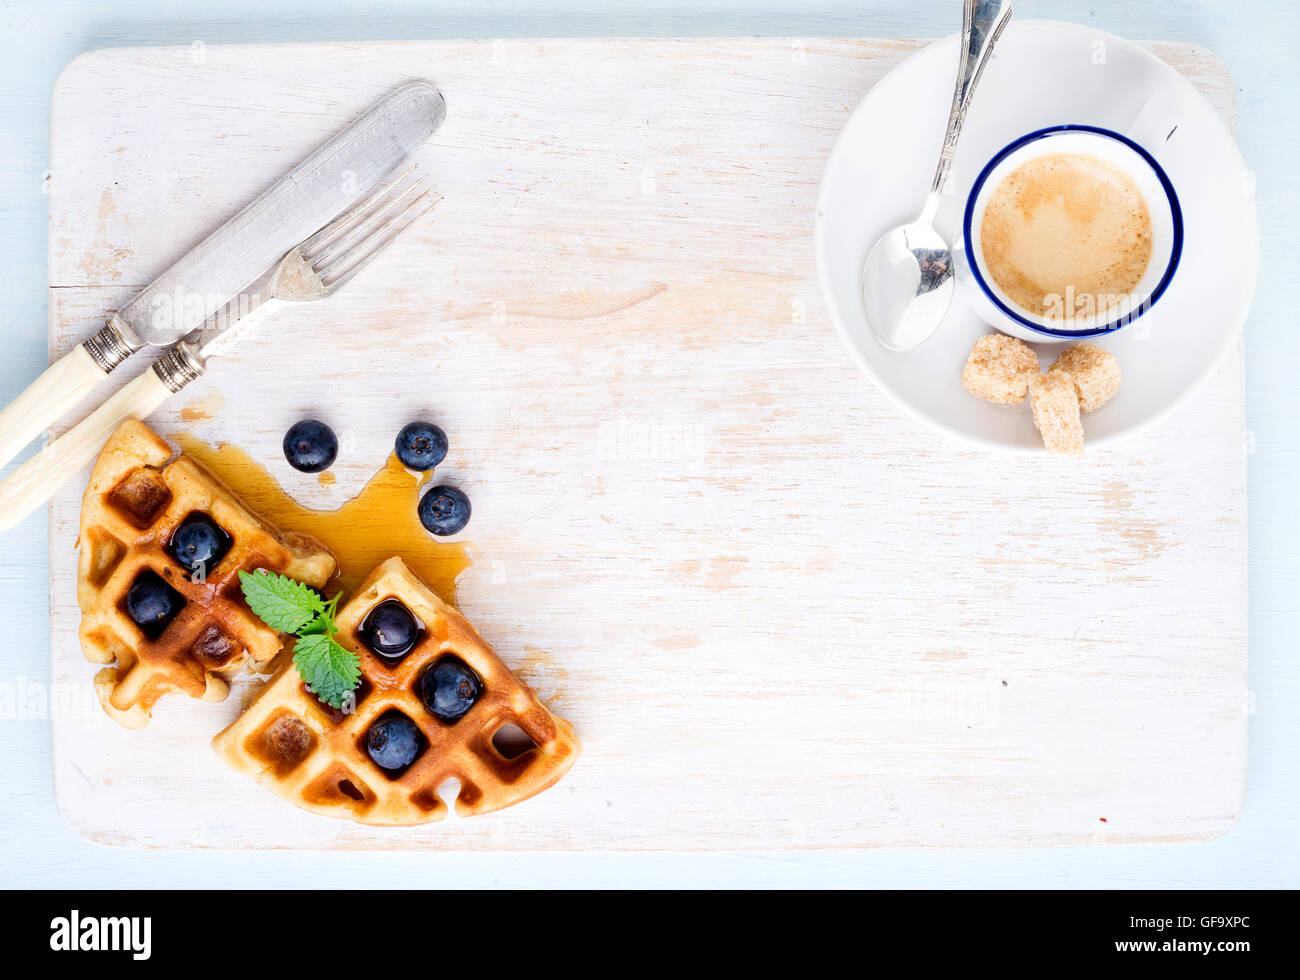 Espresso coffee cup, soft belgian waffles with fresh blueberries and marple syrup on white painted wooden board - Stock Image